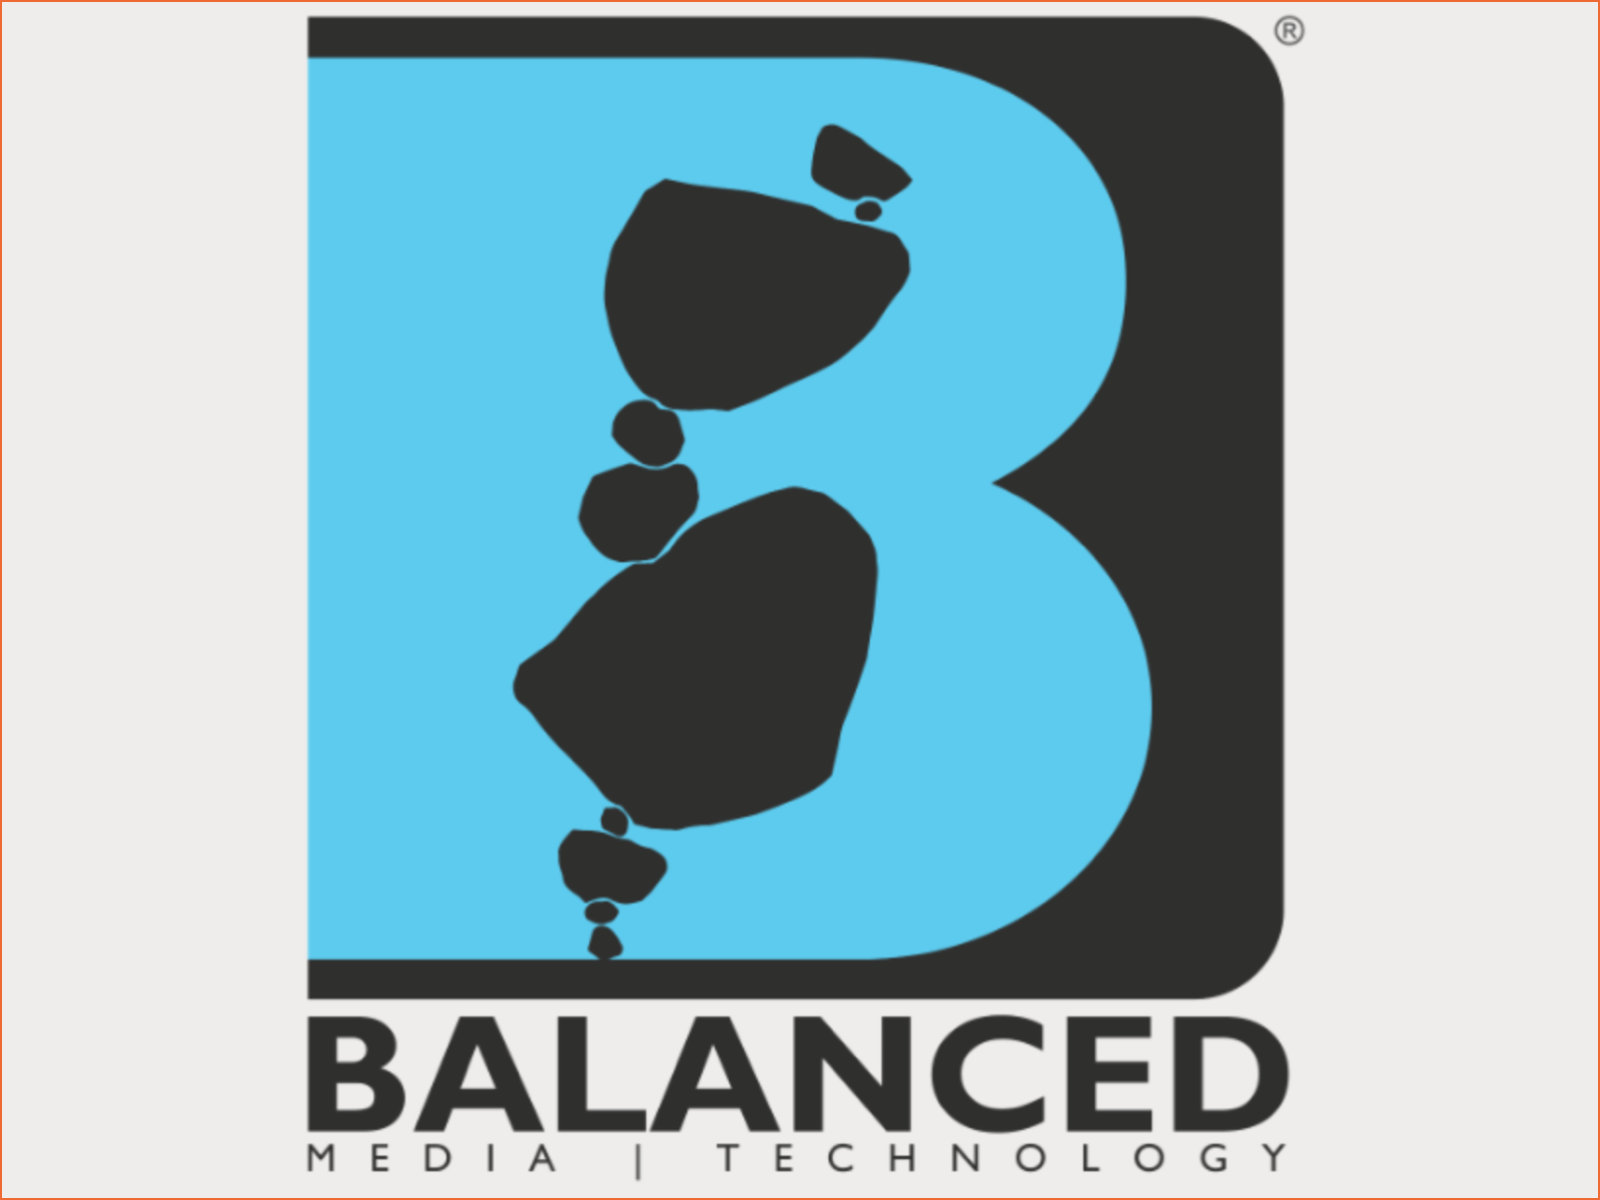 Balanced Media | Technology